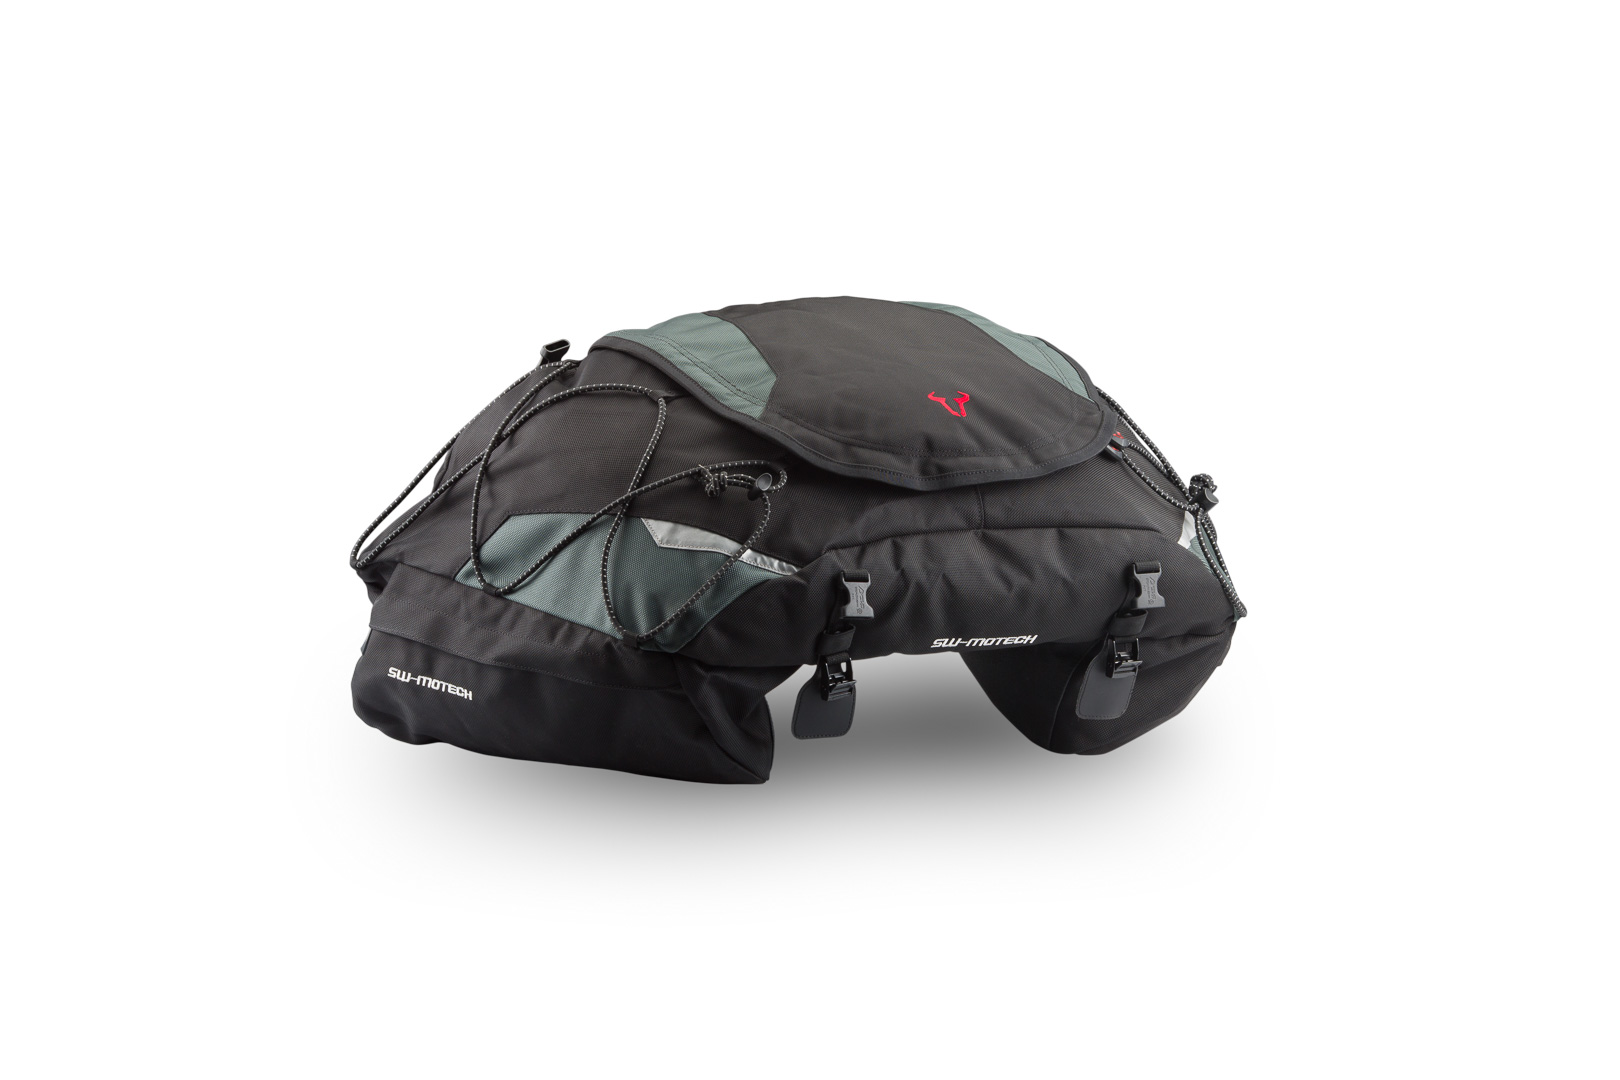 Bags-Connection Cargobag